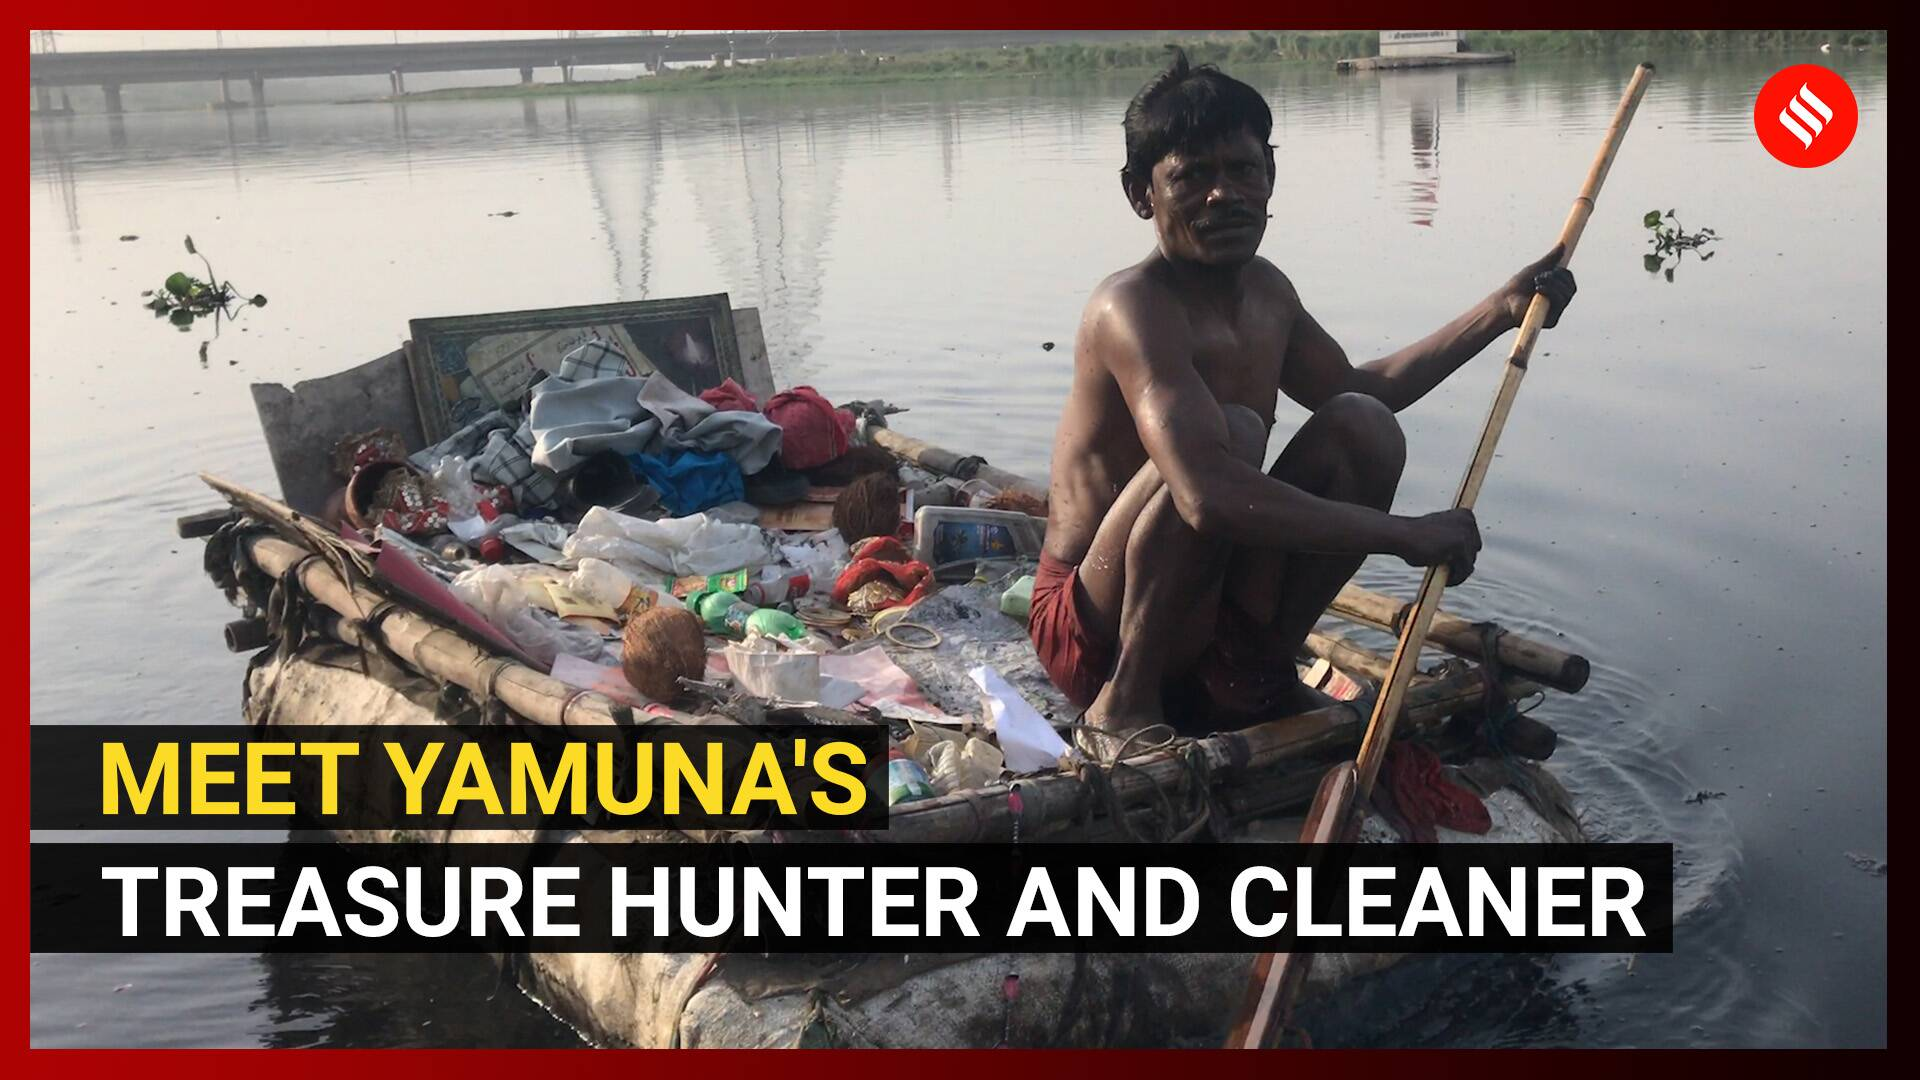 World Environment Day: Meet Banarasi, Yamuna's treasure hunter and cleaner